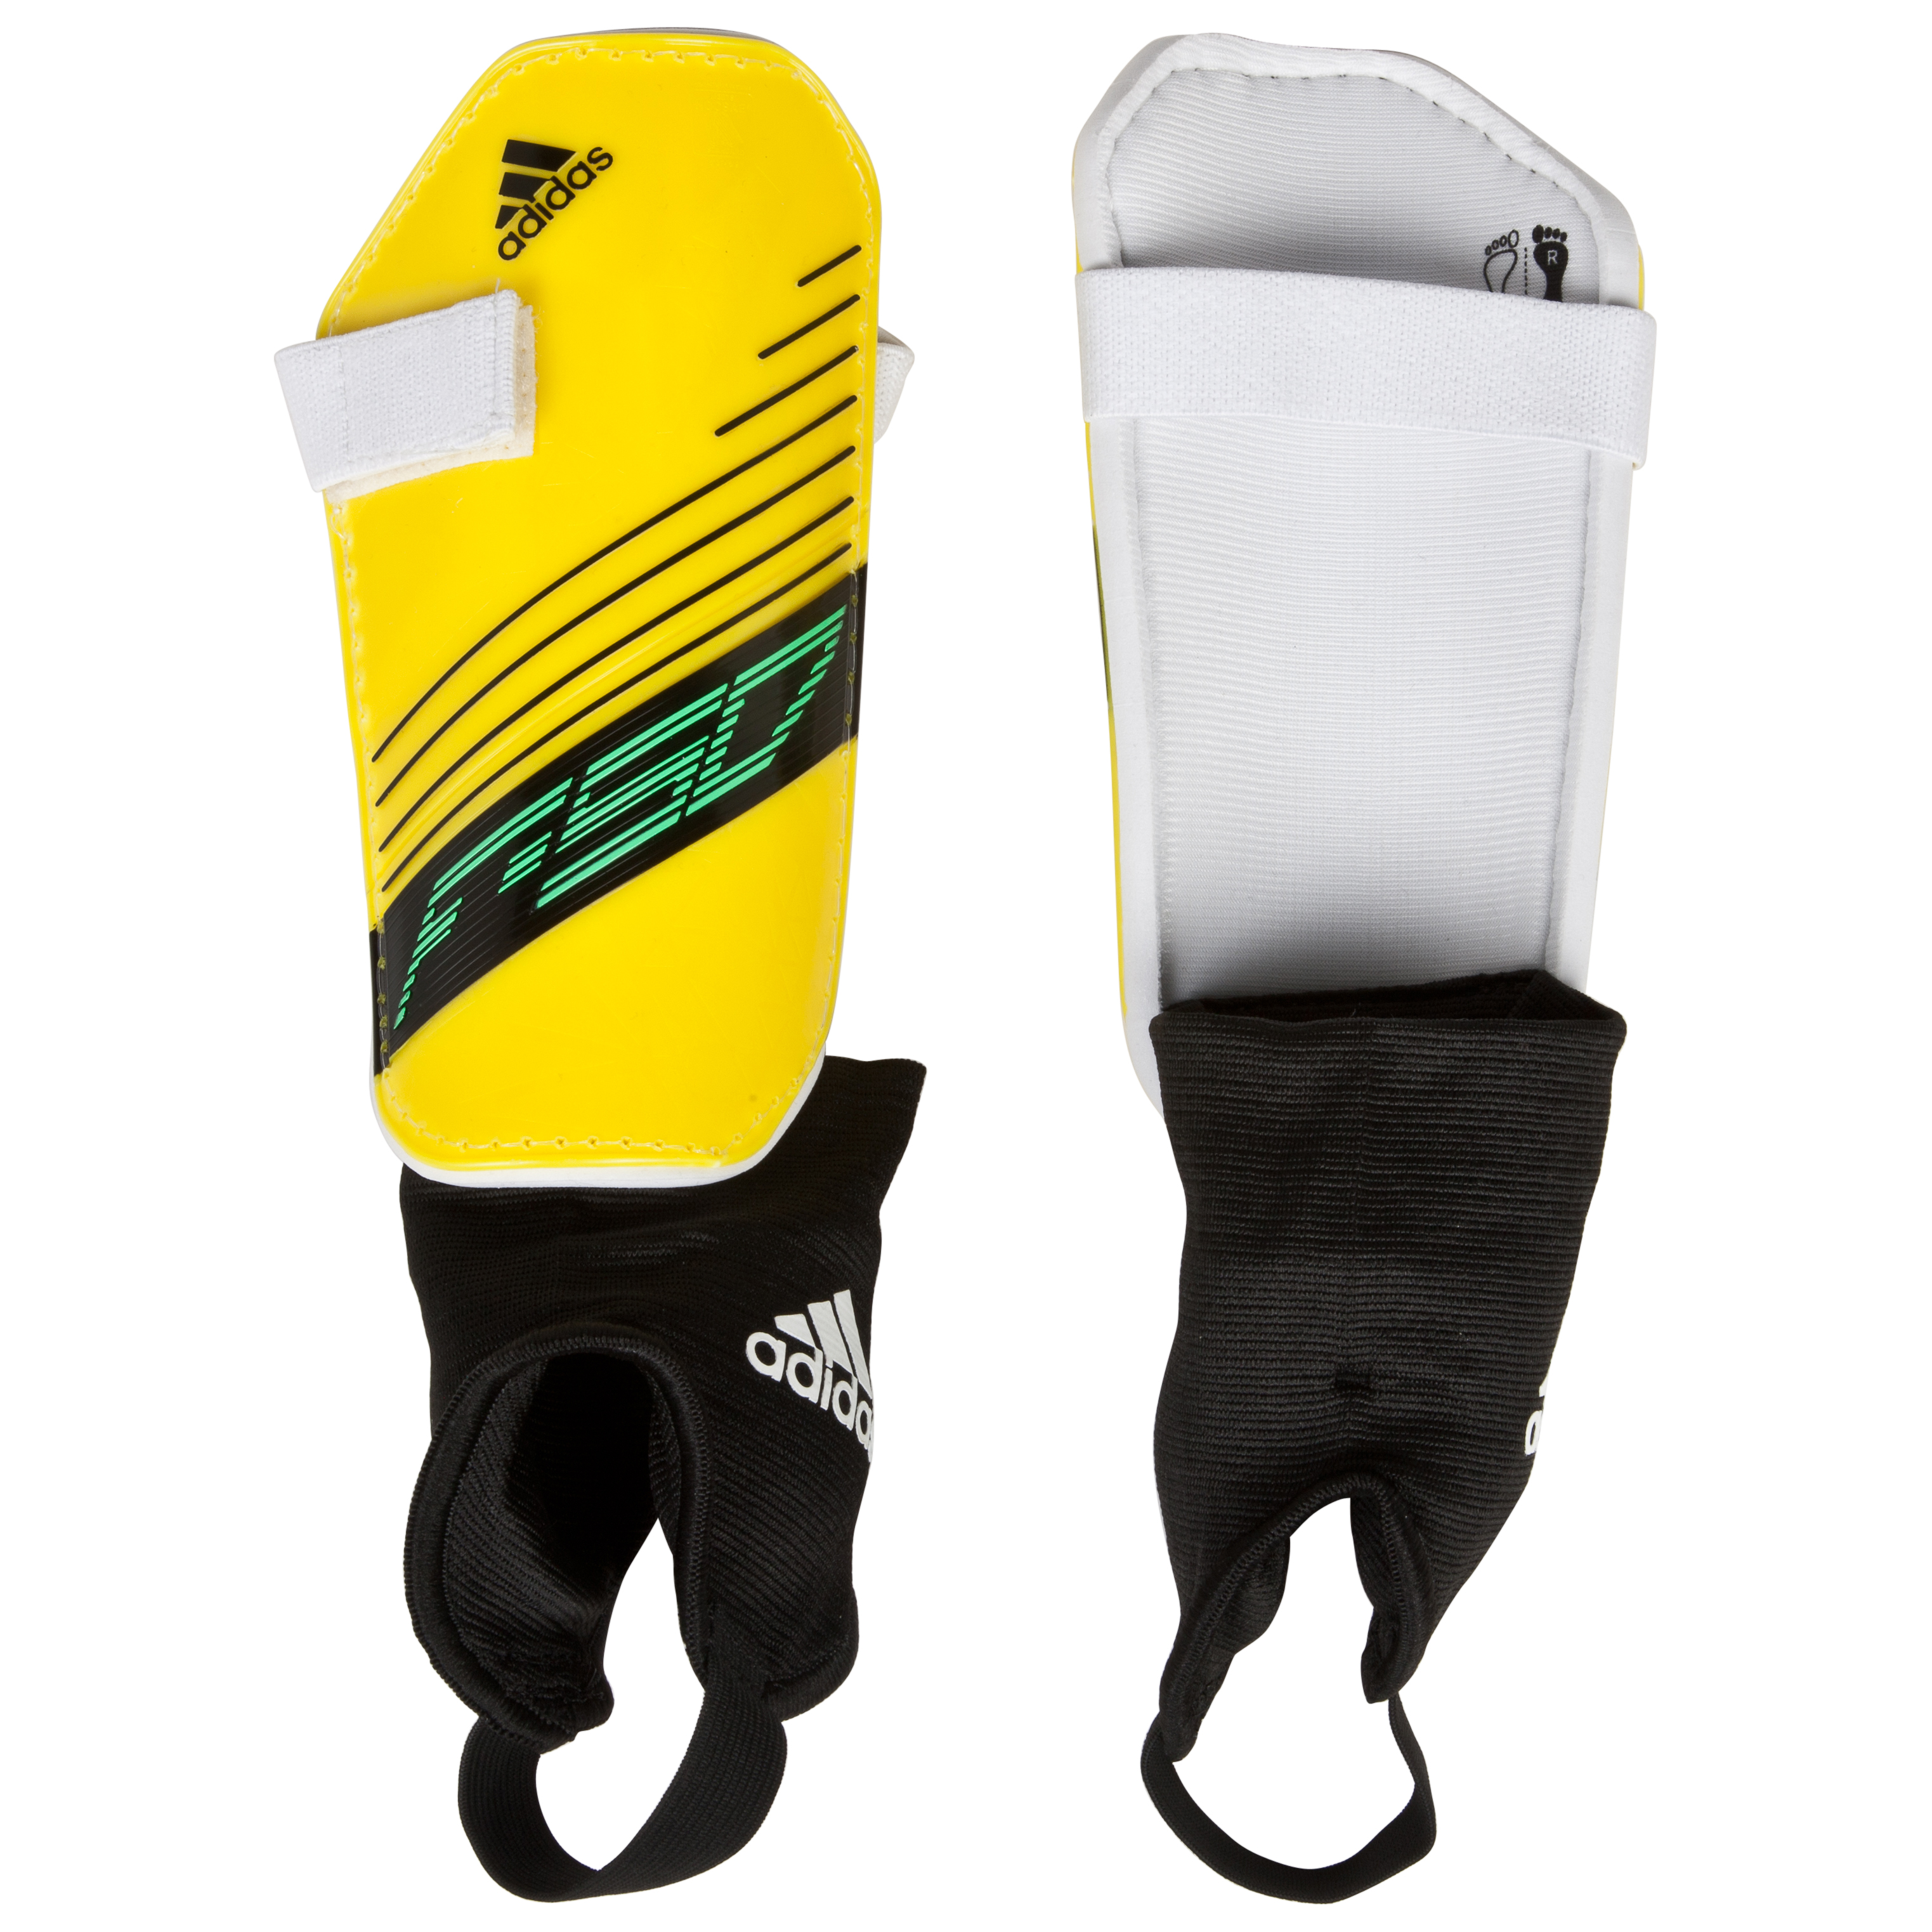 adidas F50 Replique Shinpads - Vivid Yellow S13/White/Black/Green Zest